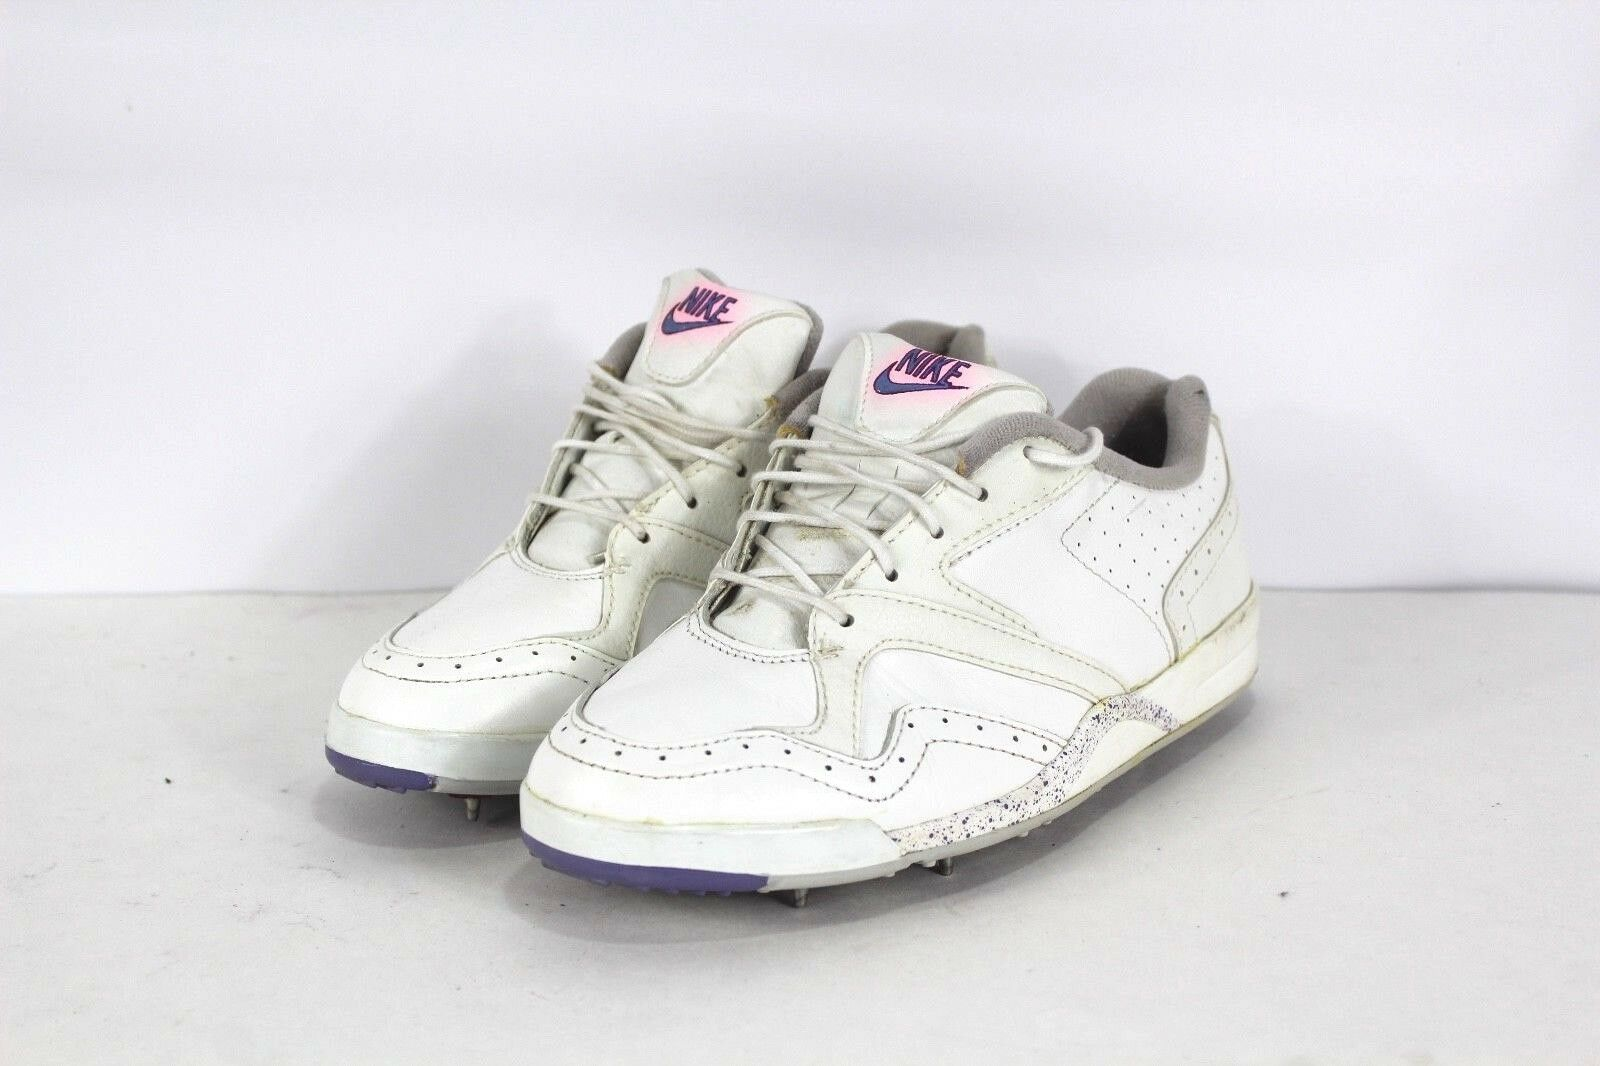 Vintage 90s NIKE Womens Size 8 Mens 6.5 Speckled Leather Golf Shoes White Purple